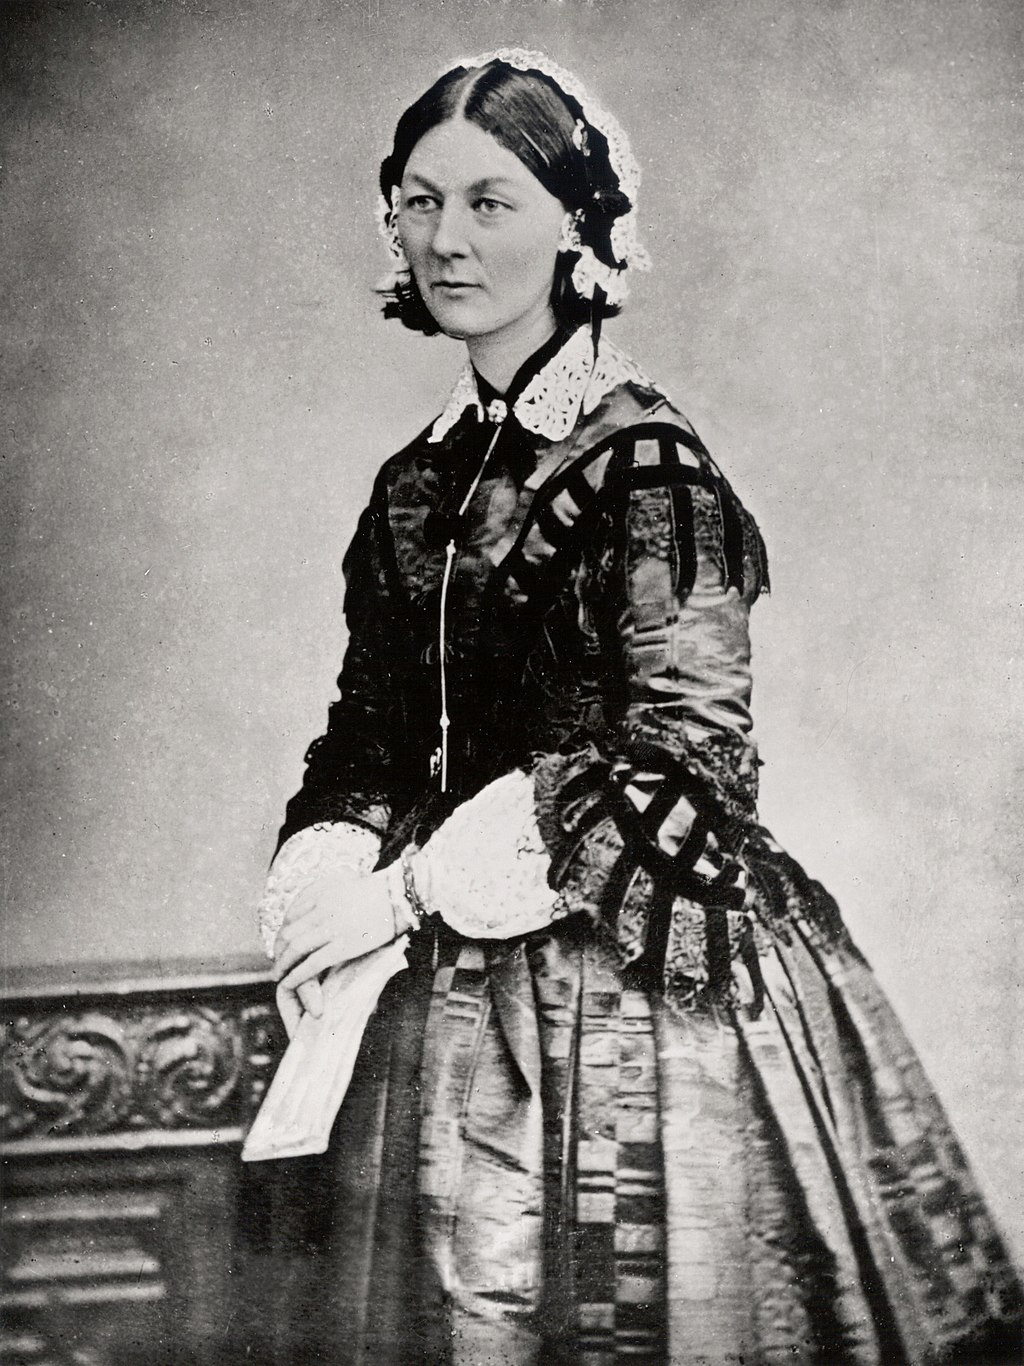 Three quarter portrait of Florence.  she is wearing a lace cap and shirt with a fitted jacket over the top.  She is holding a folded piece of paper in her hands and wears a wide skirt.